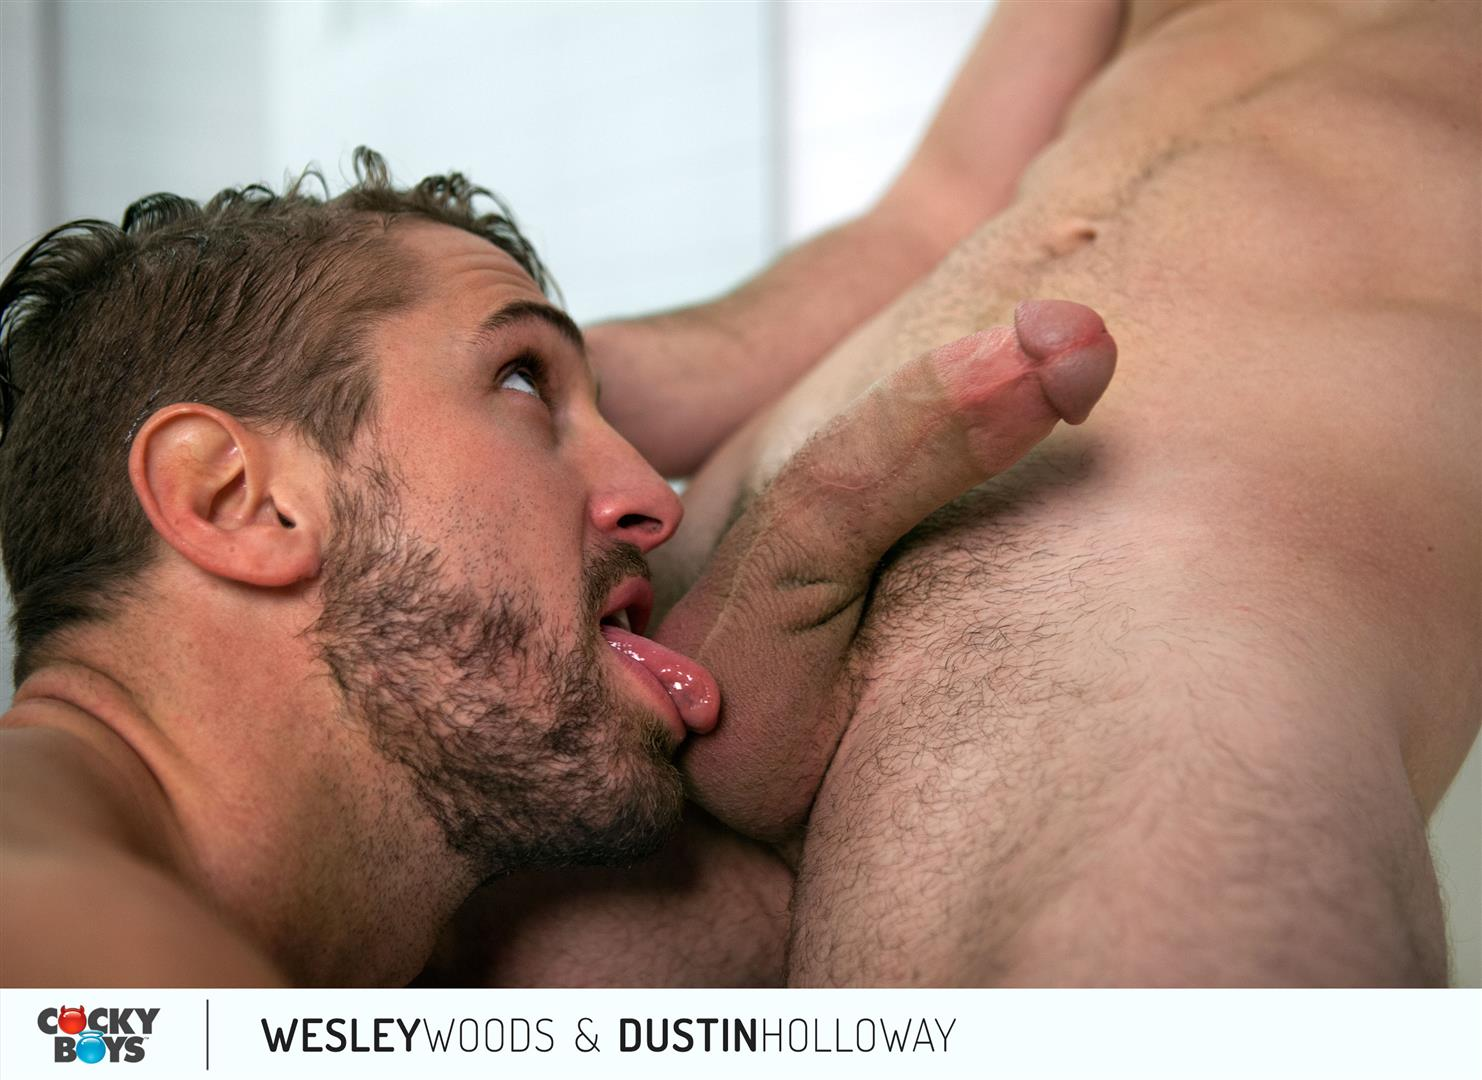 Cockyboys-Wesley-Woods-and-Dustin-Holloway-Hung-Hunks-Flip-Fucking-Amateur-Gay-Porn-12 Cockyboys:  Wesley Woods and Dustin Holloway Flip-Flop Fucking